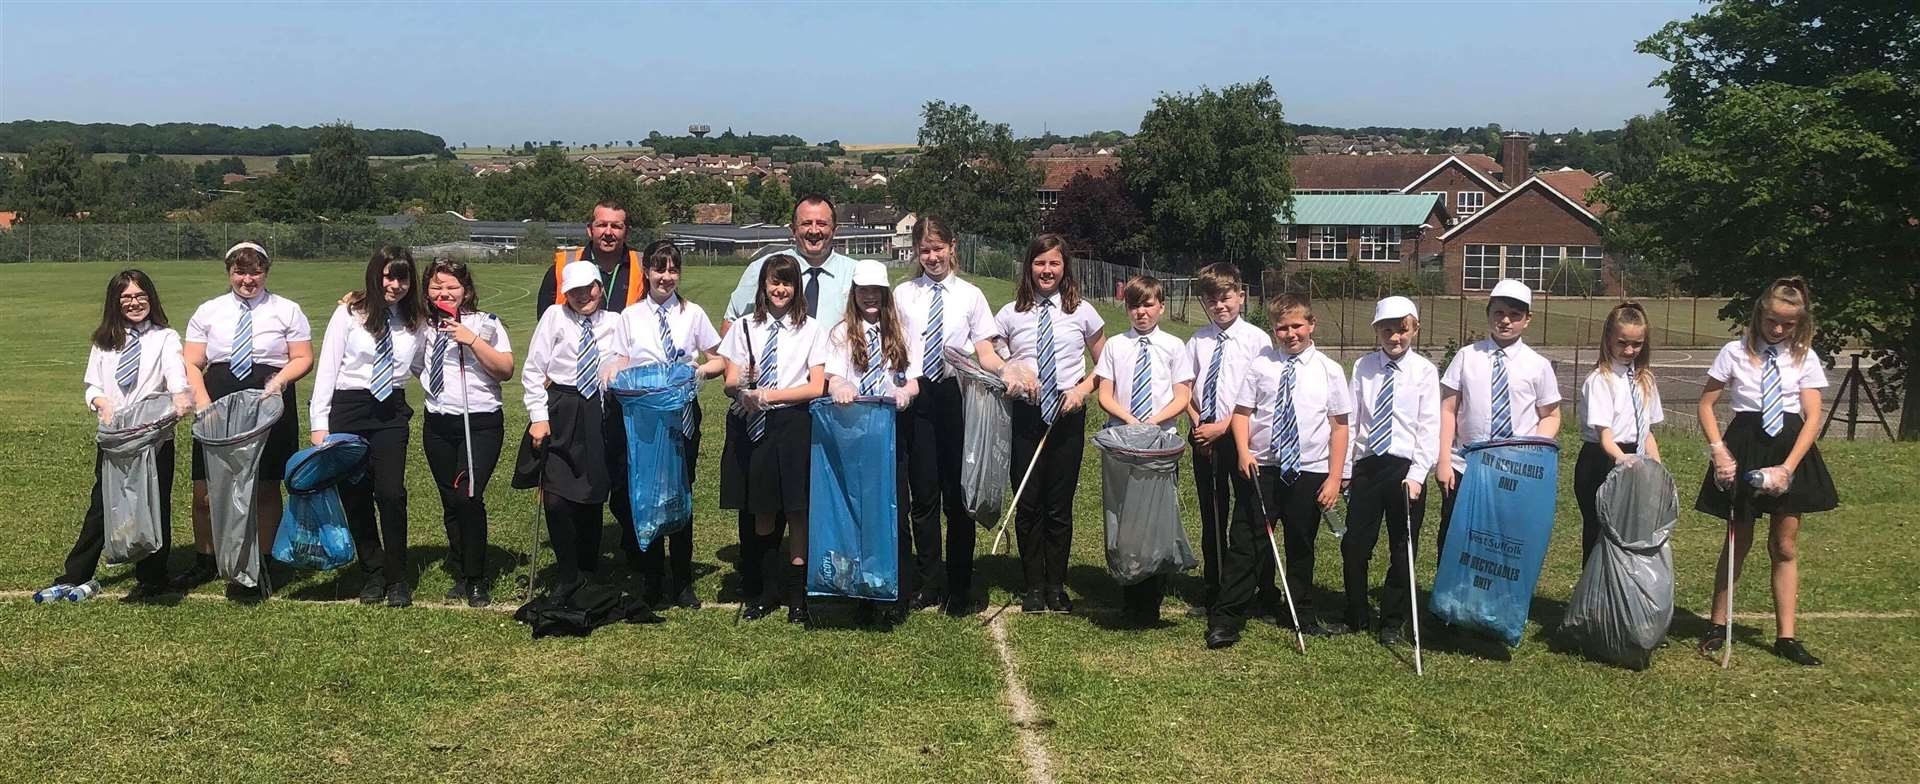 Some of the Castle Manor Academy students and staff out on their litter pick. Contributed picture